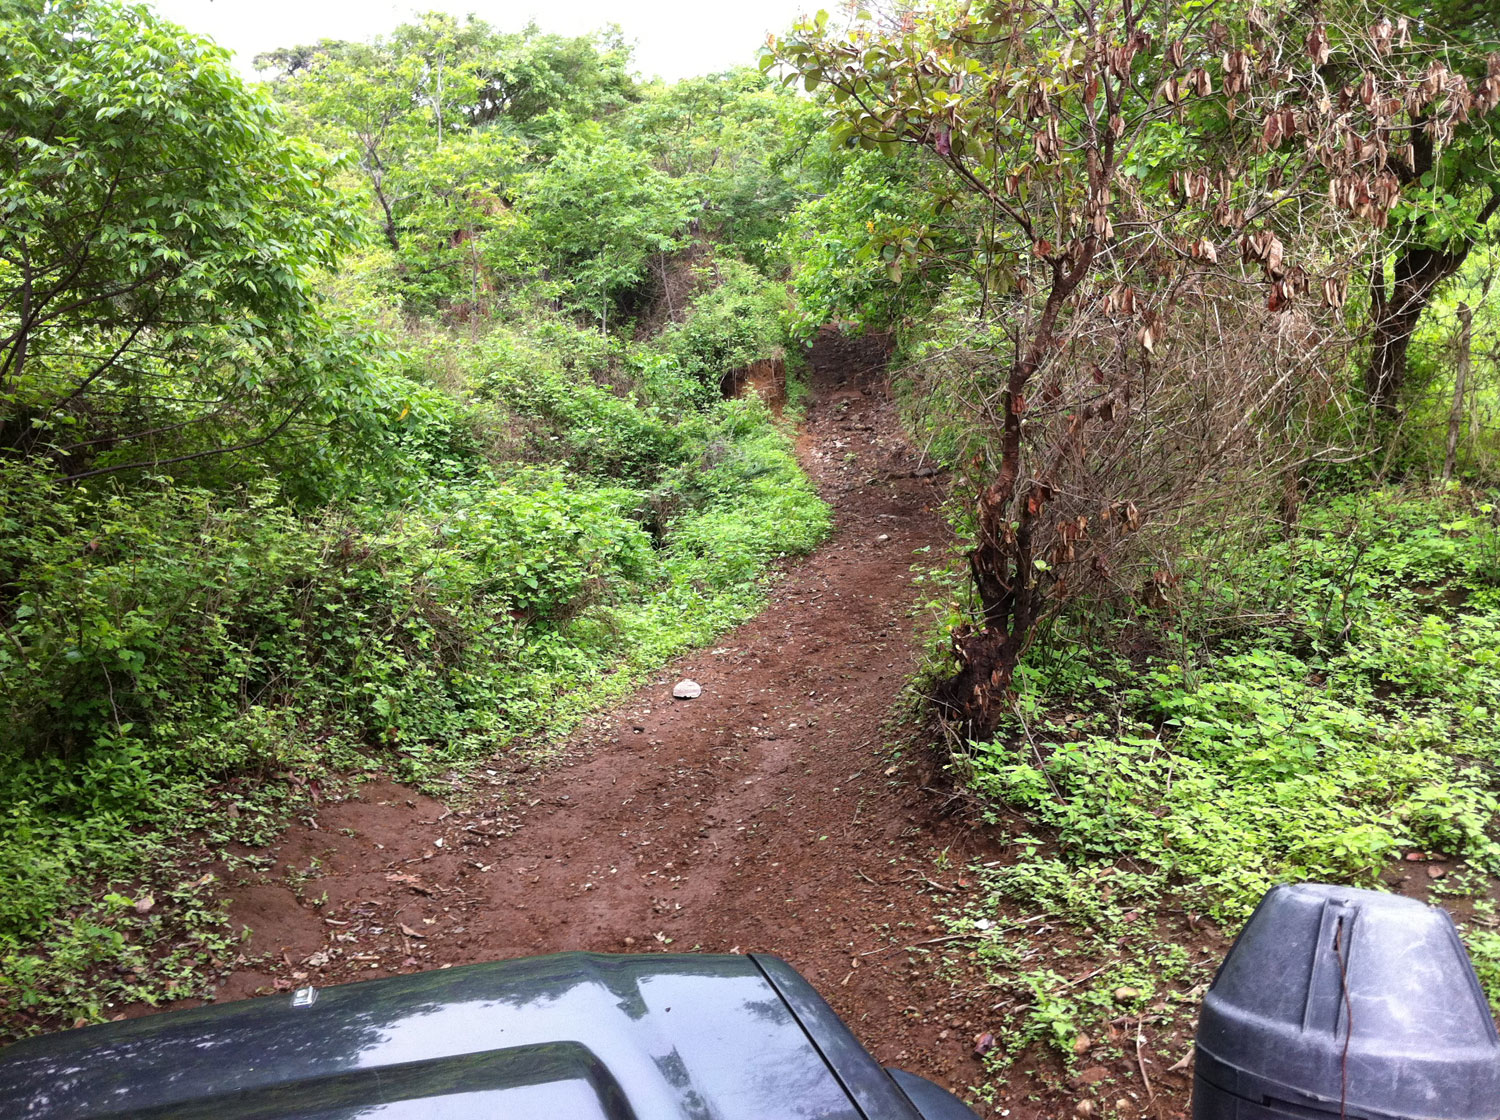 One of the steeper sections of road on our way to the community